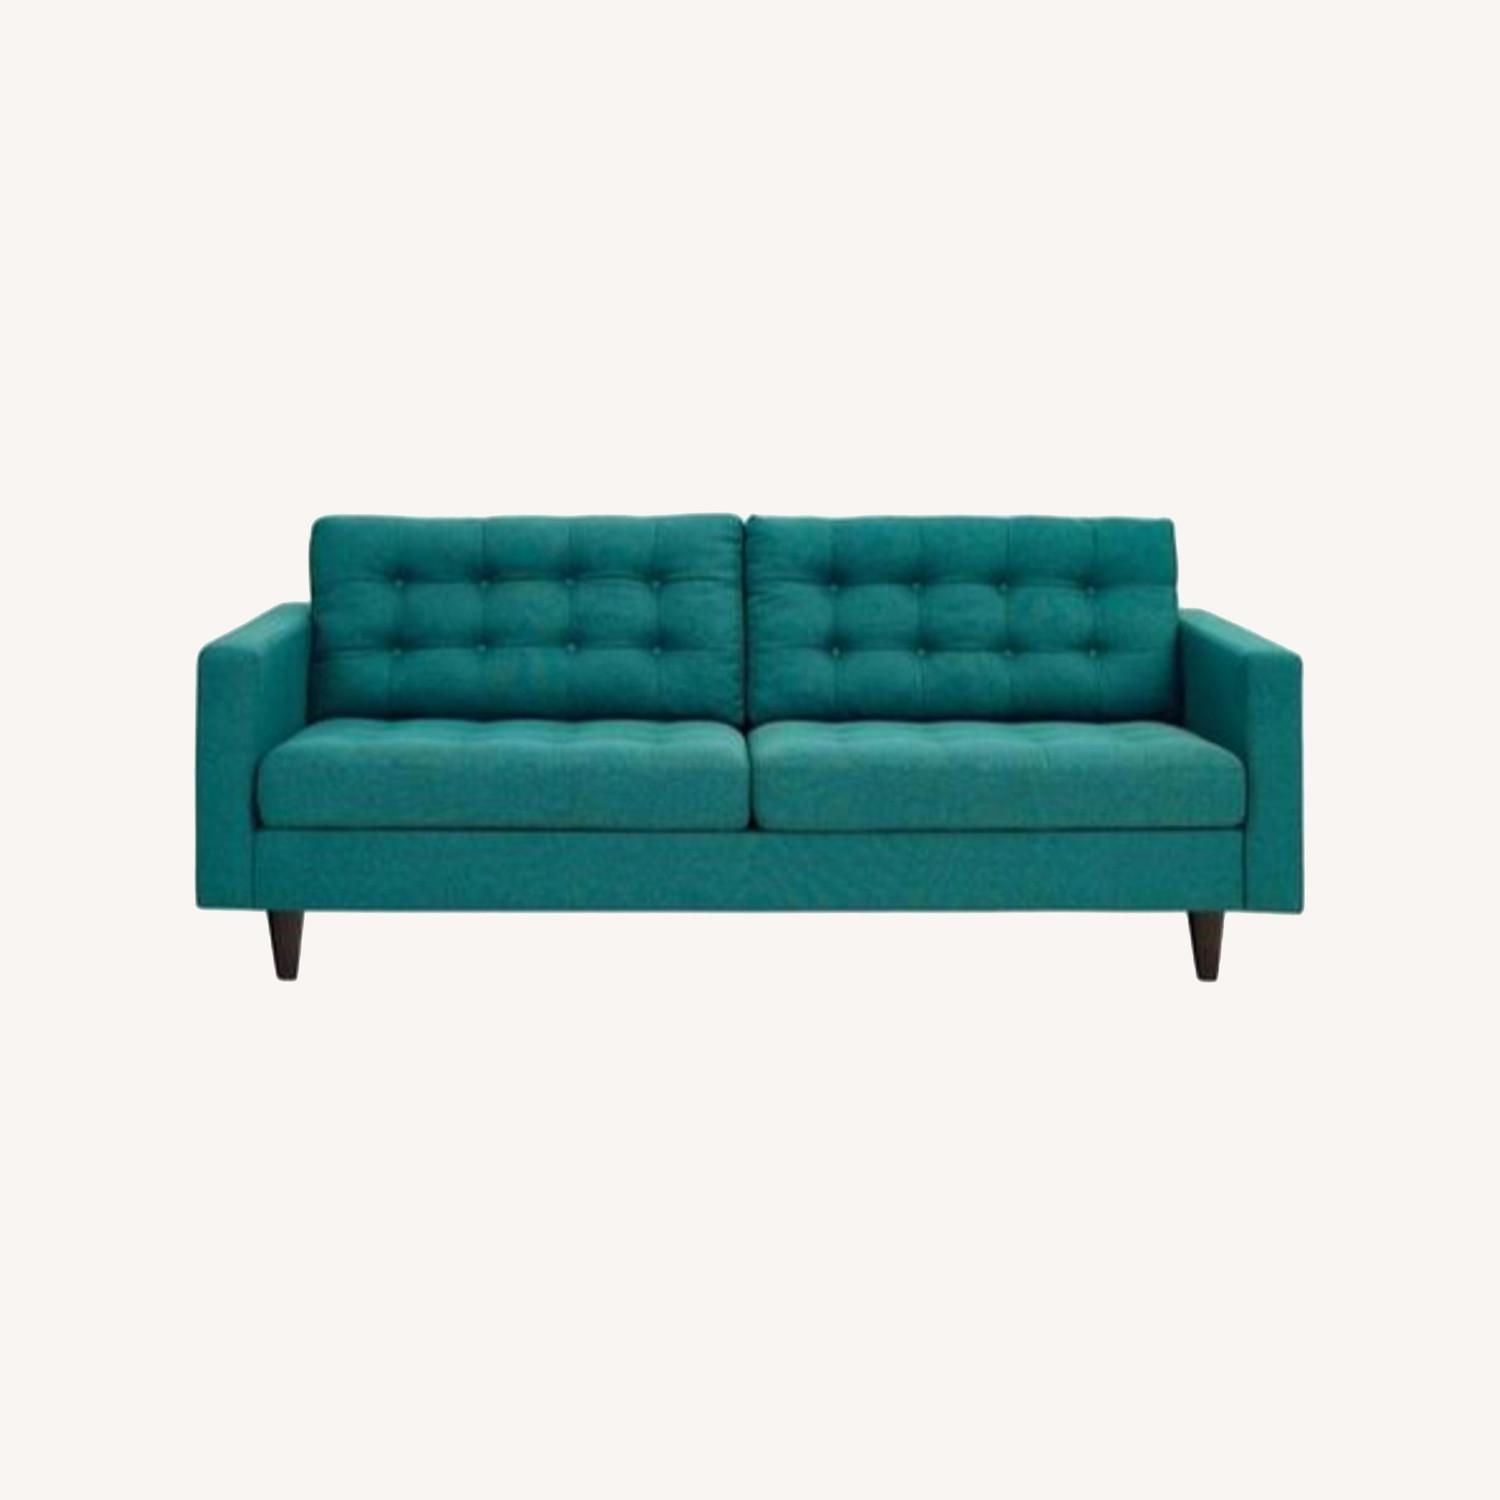 Modern Style Sofa In Teal Fabric W/ Tufted Buttons - image-5